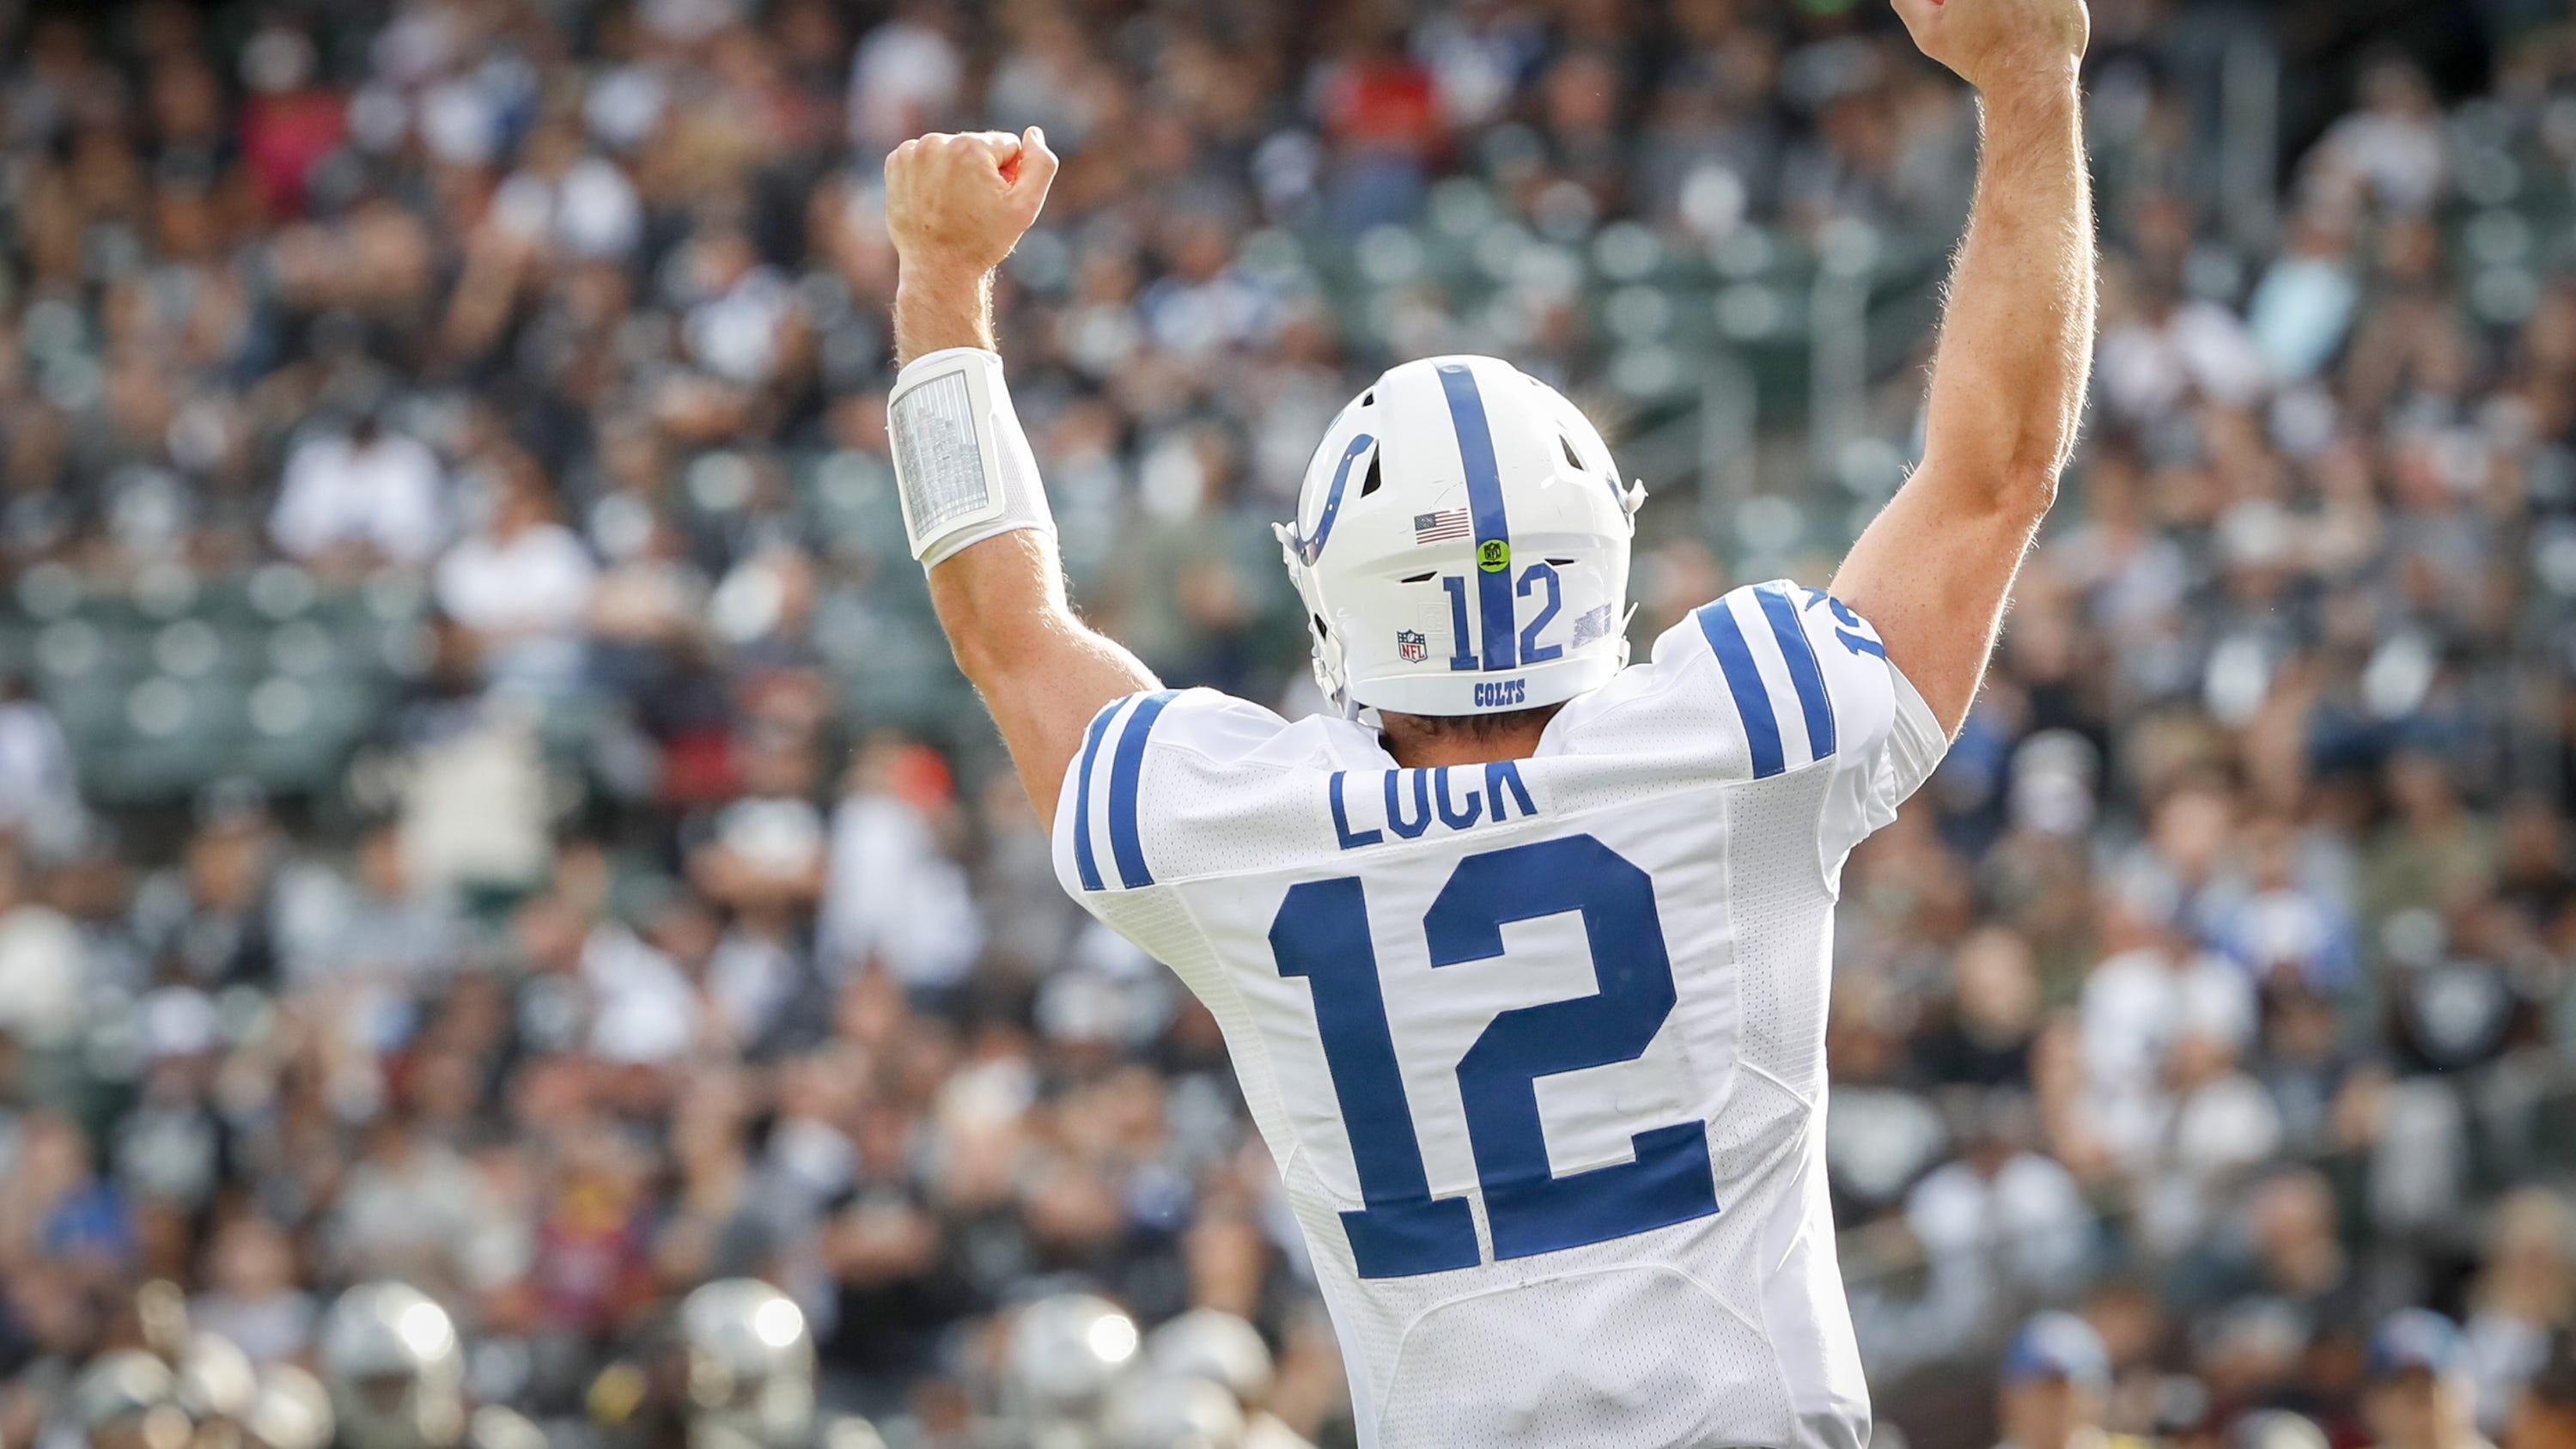 Captain Andrew Luck retires. Here are his 10 most popular tweets.